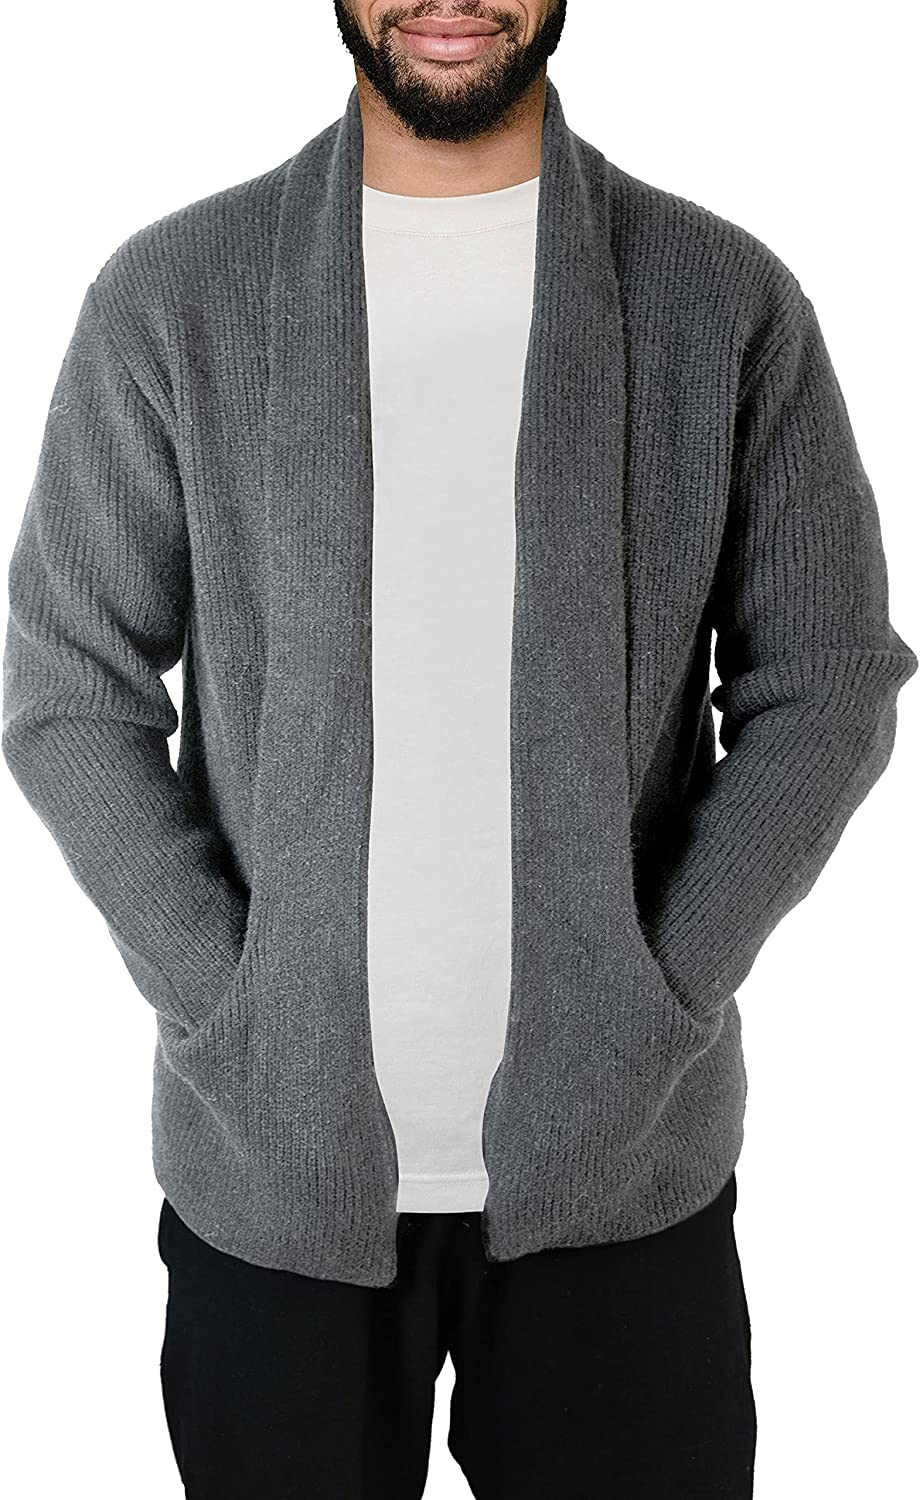 Men's New popularity Black Warm Shawl Collar Cardigan H Pocket Chunky with Excellence Knit